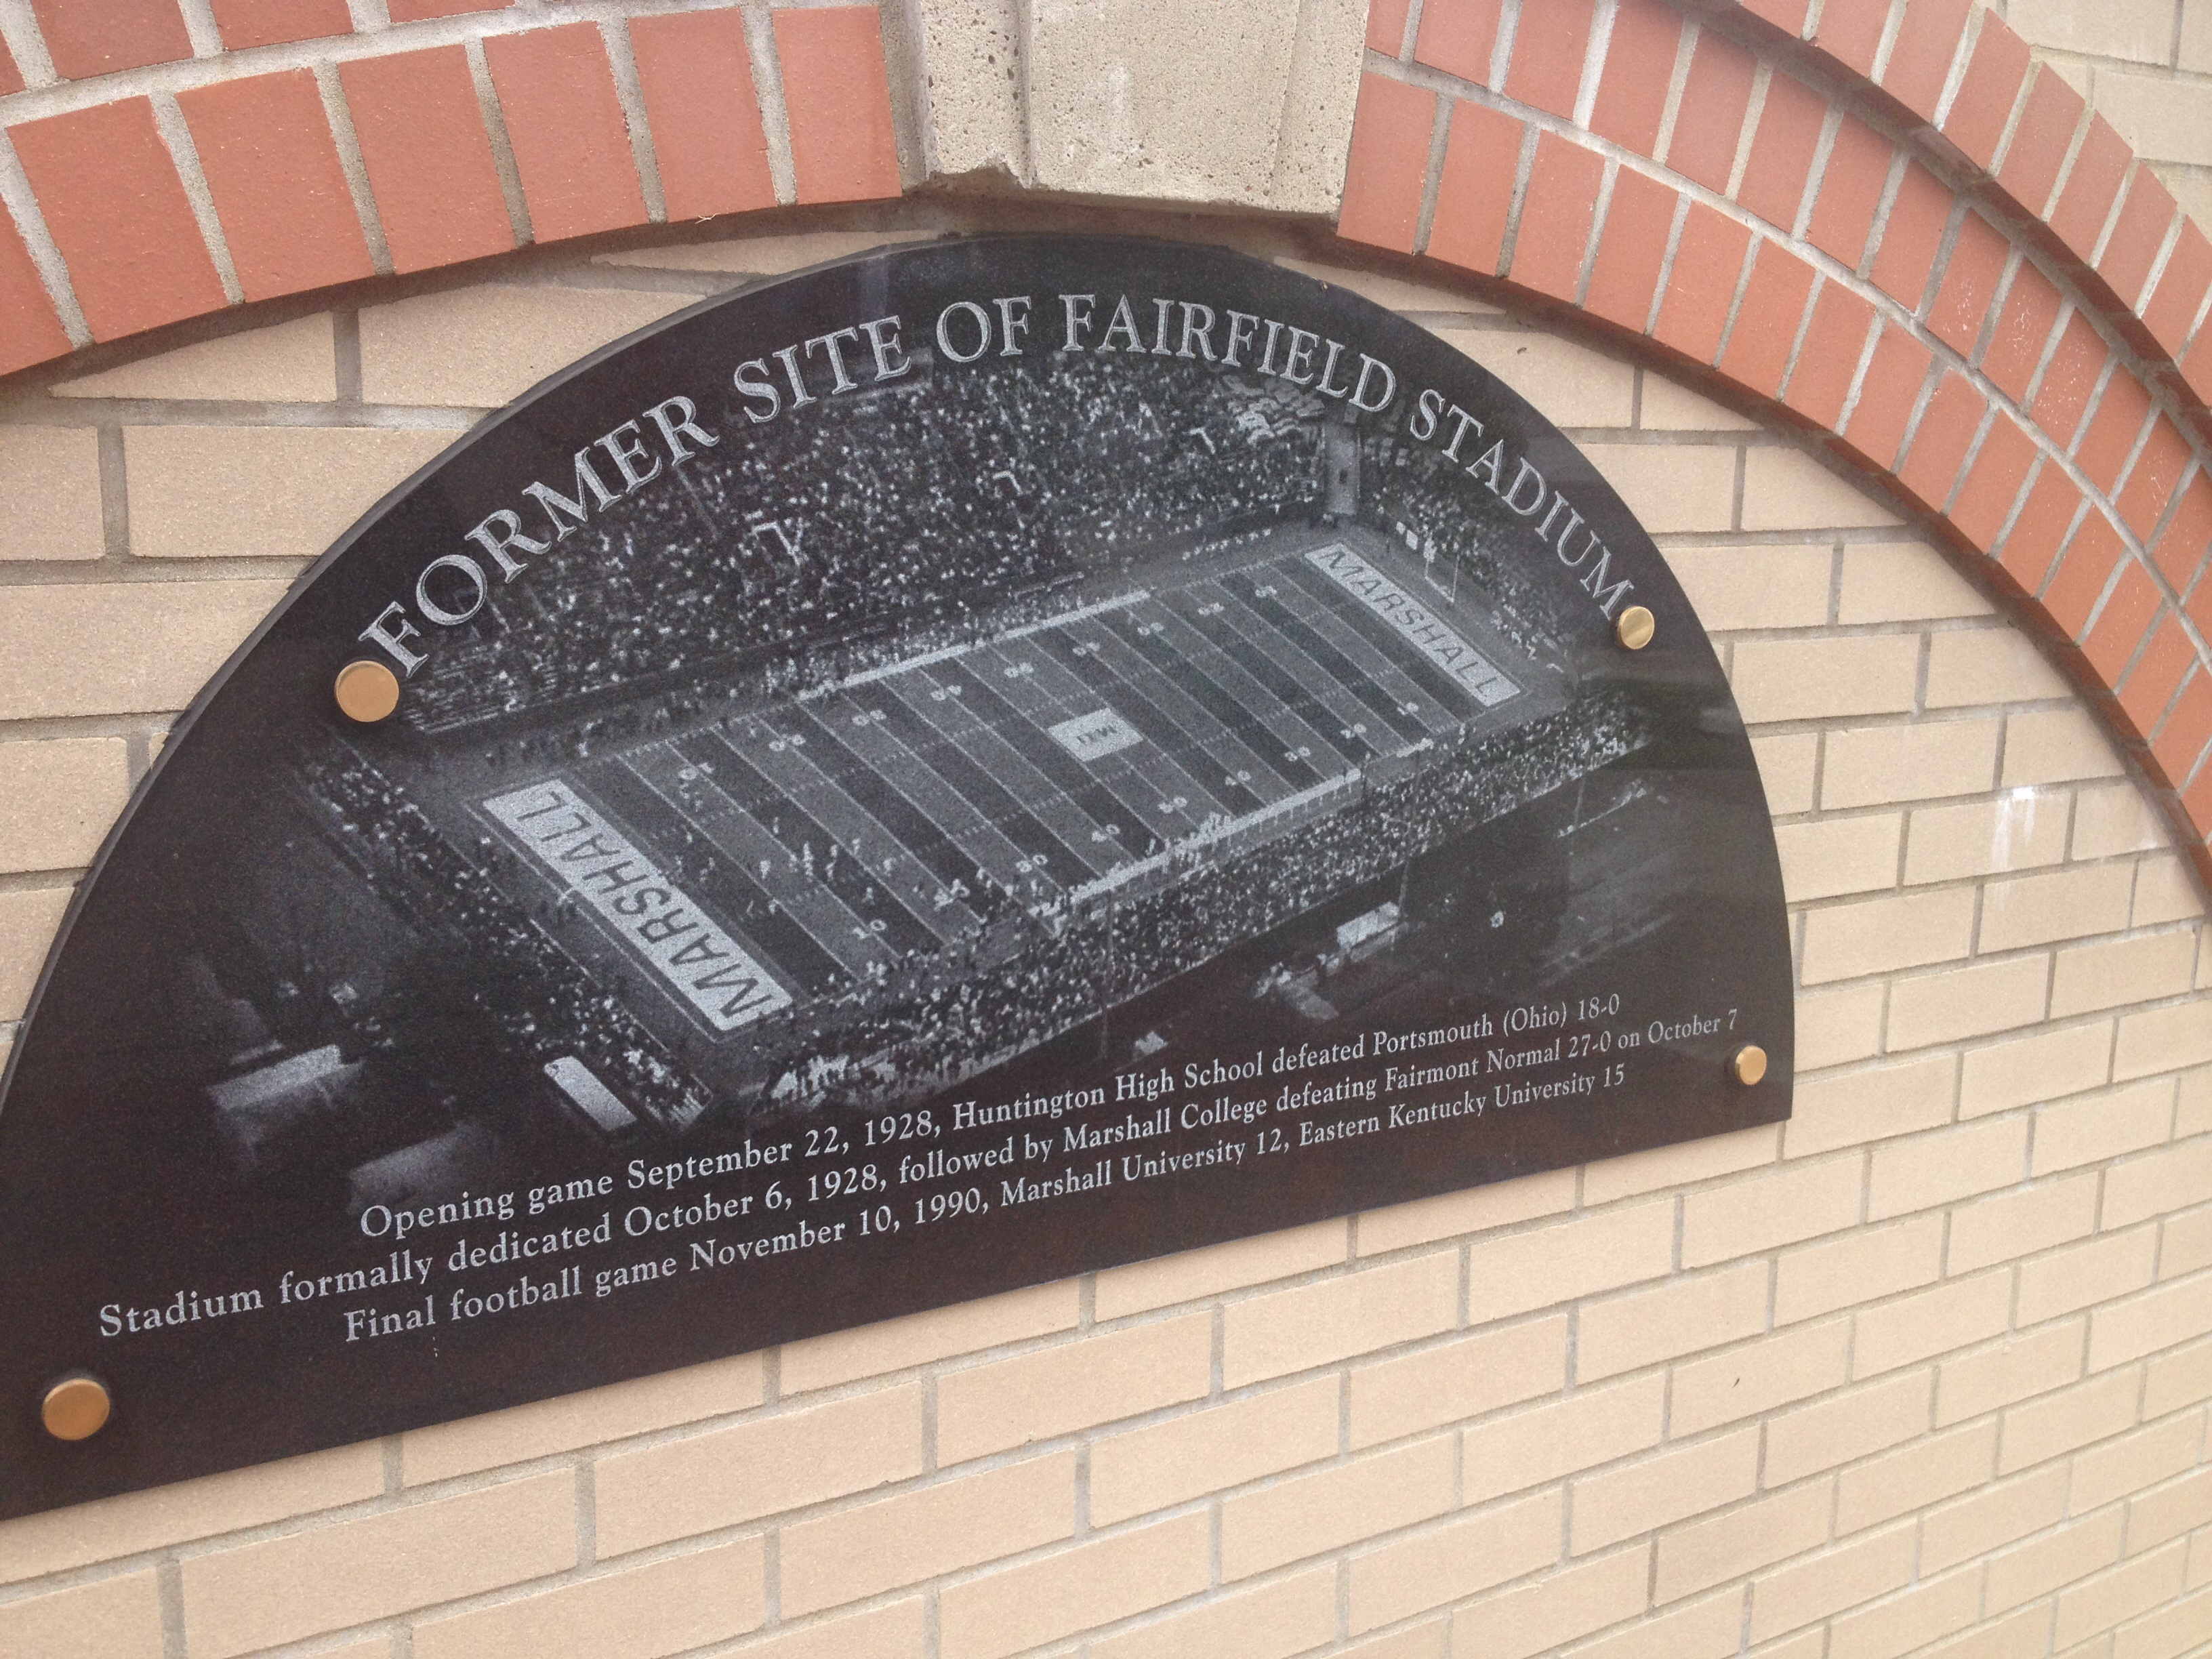 This plaque commemorates the former Fairfield Stadium.